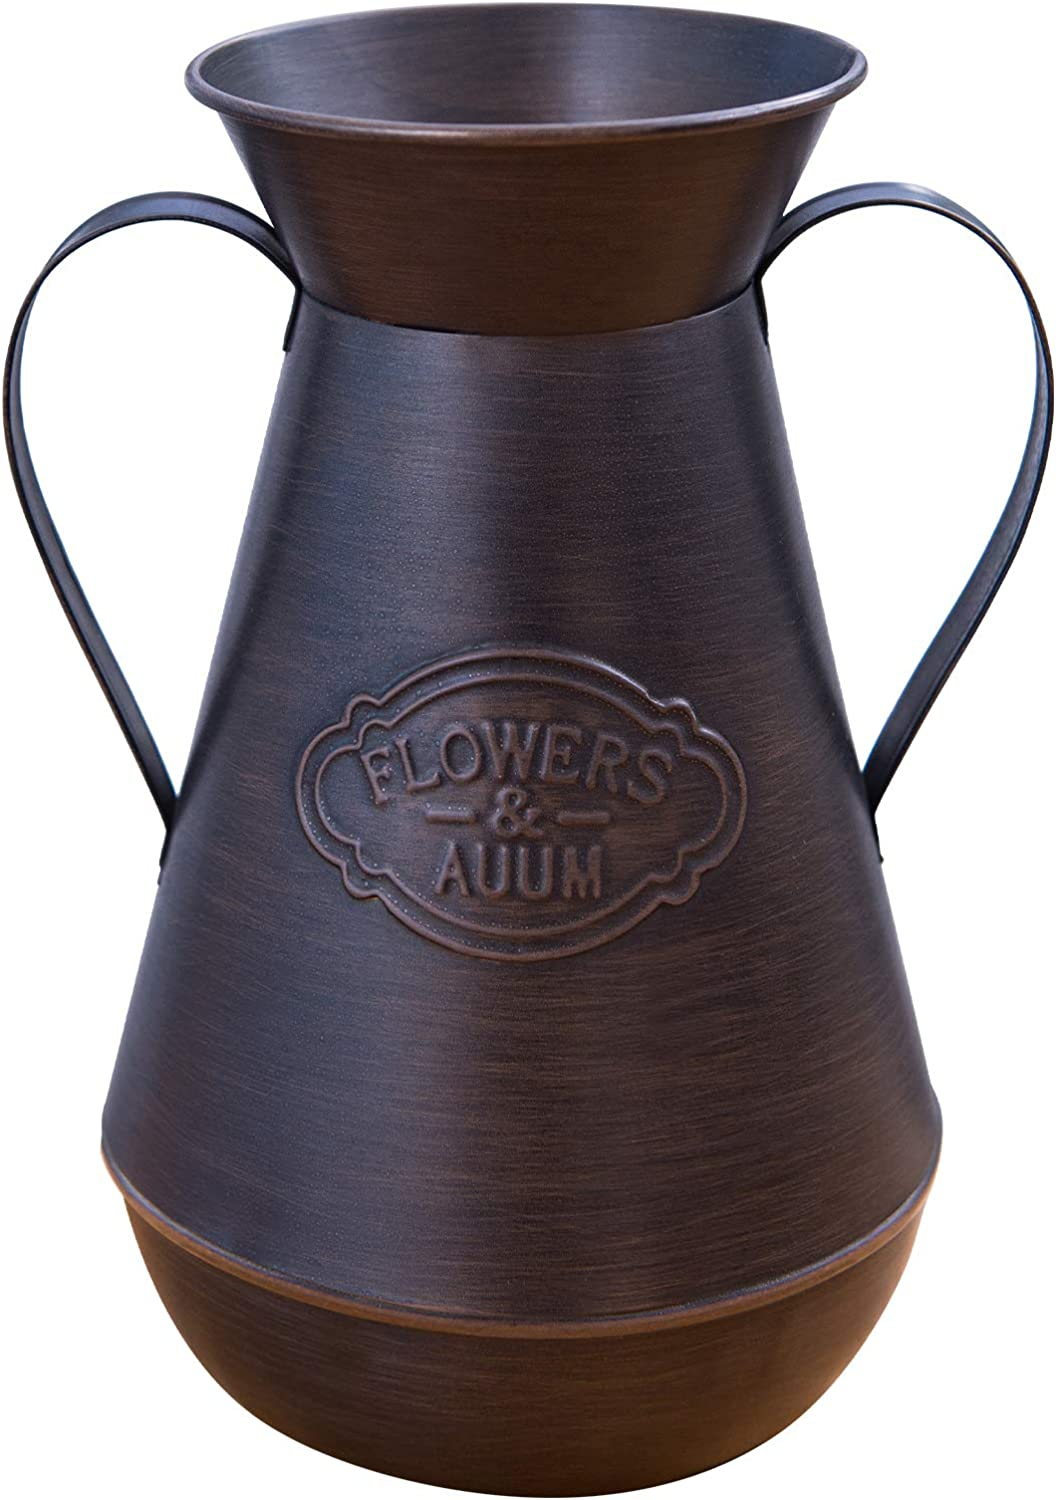 AUUM Shabby Chic Decor Vase, 9.5 Inch Metal Vase for Flowers Vintage Bronze French Rustic Style Galvanized Handmade Milk Can Country Jug for Home Decor